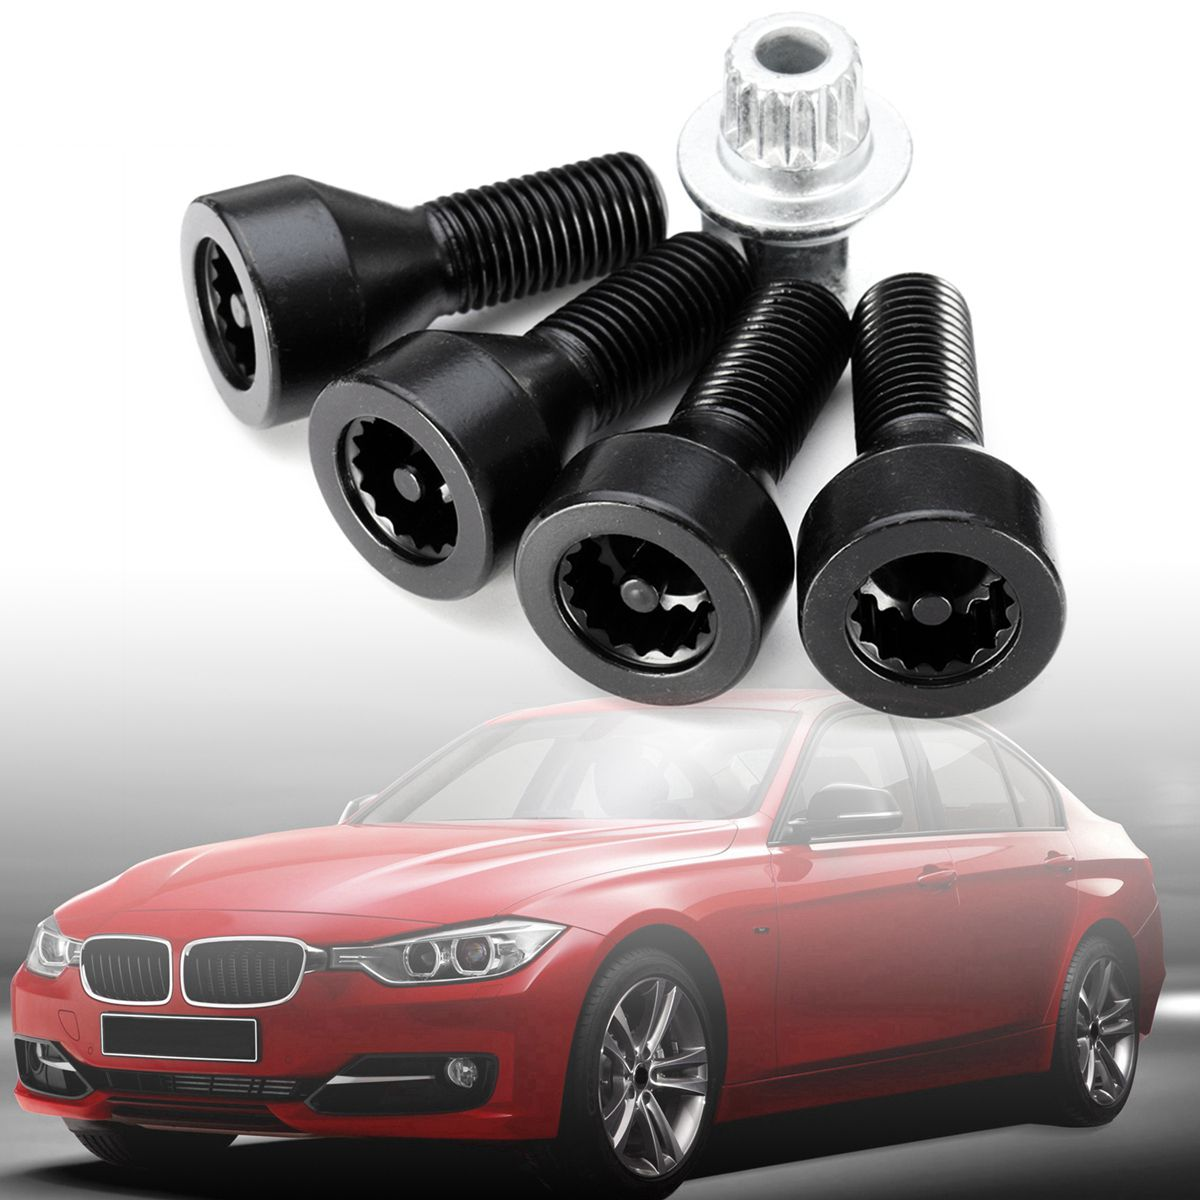 Wheel Lock Set Black Lug Bolts For BMW 128i 135i 318i 323i 325i 328i 330i 335i 525i 528i 530i 535i 540i 545i 550i 650i 735i 740i for bmw e36 318i 323i 325i 328i m3 carbon fiber headlight eyebrows eyelids 1992 1998